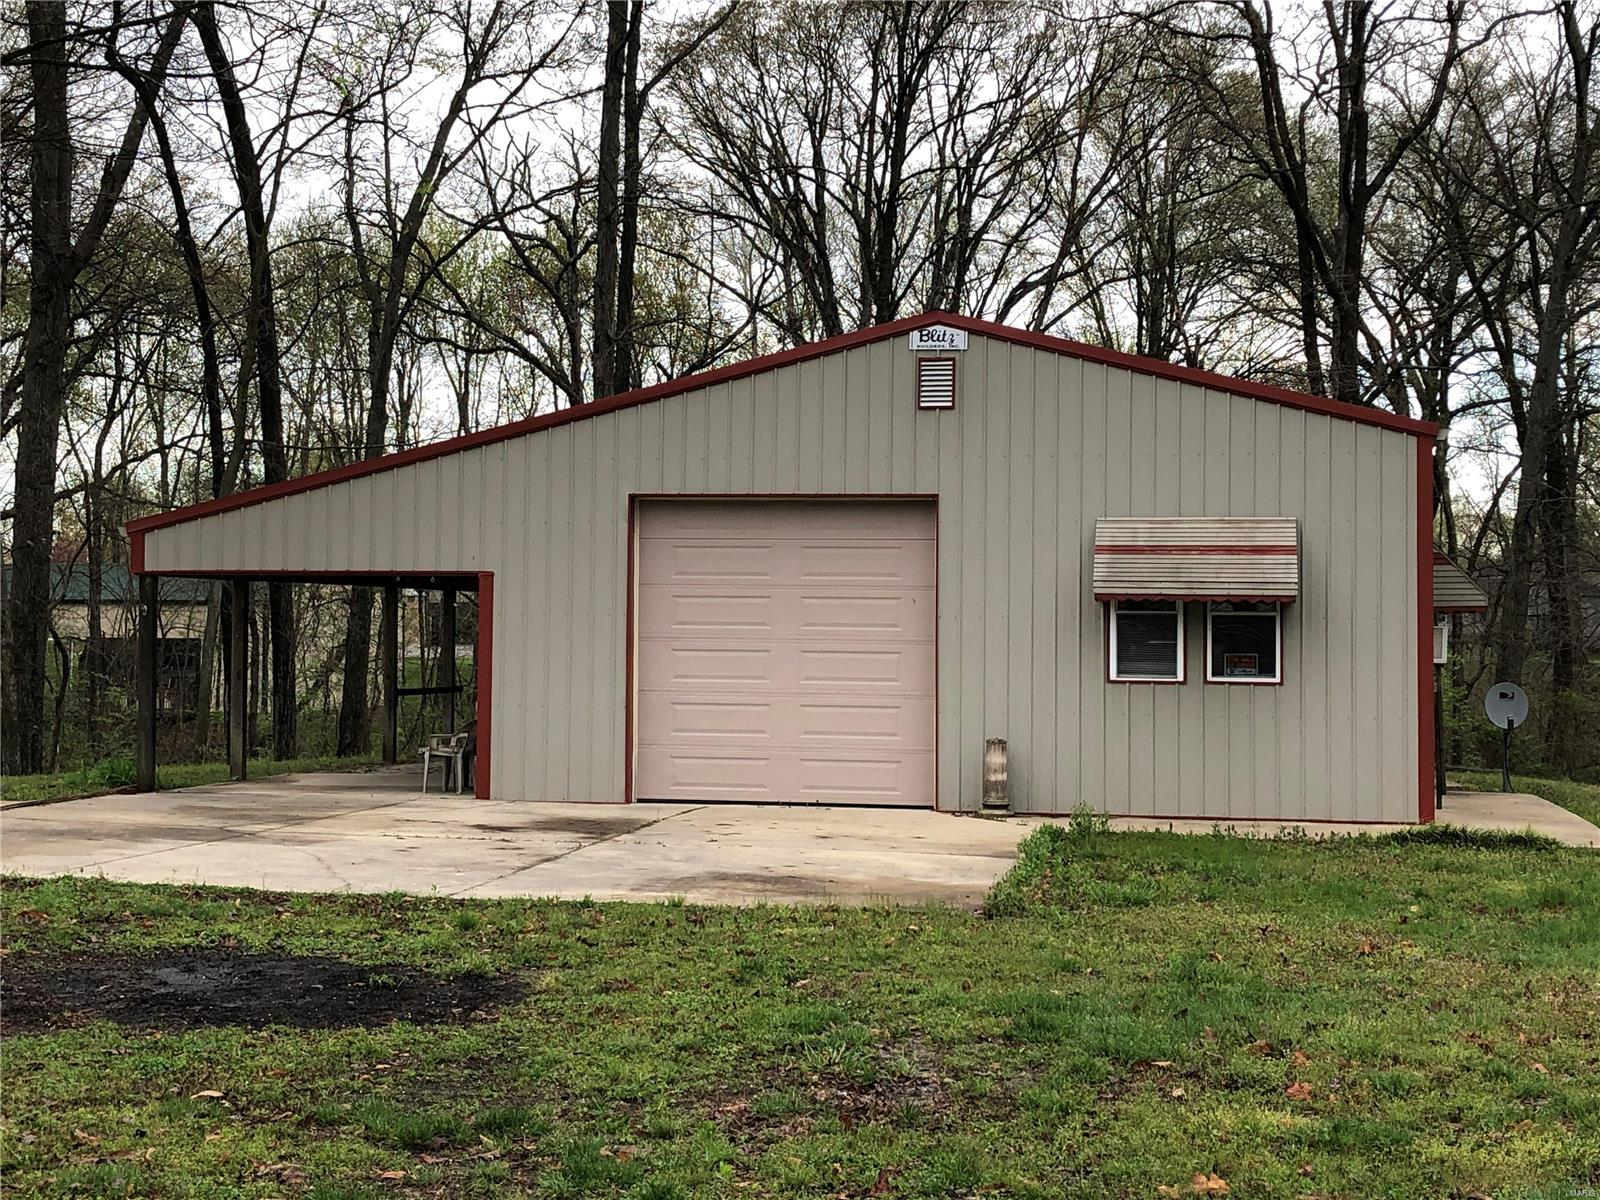 19507 Timber Lane Property Photo - Carlyle, IL real estate listing